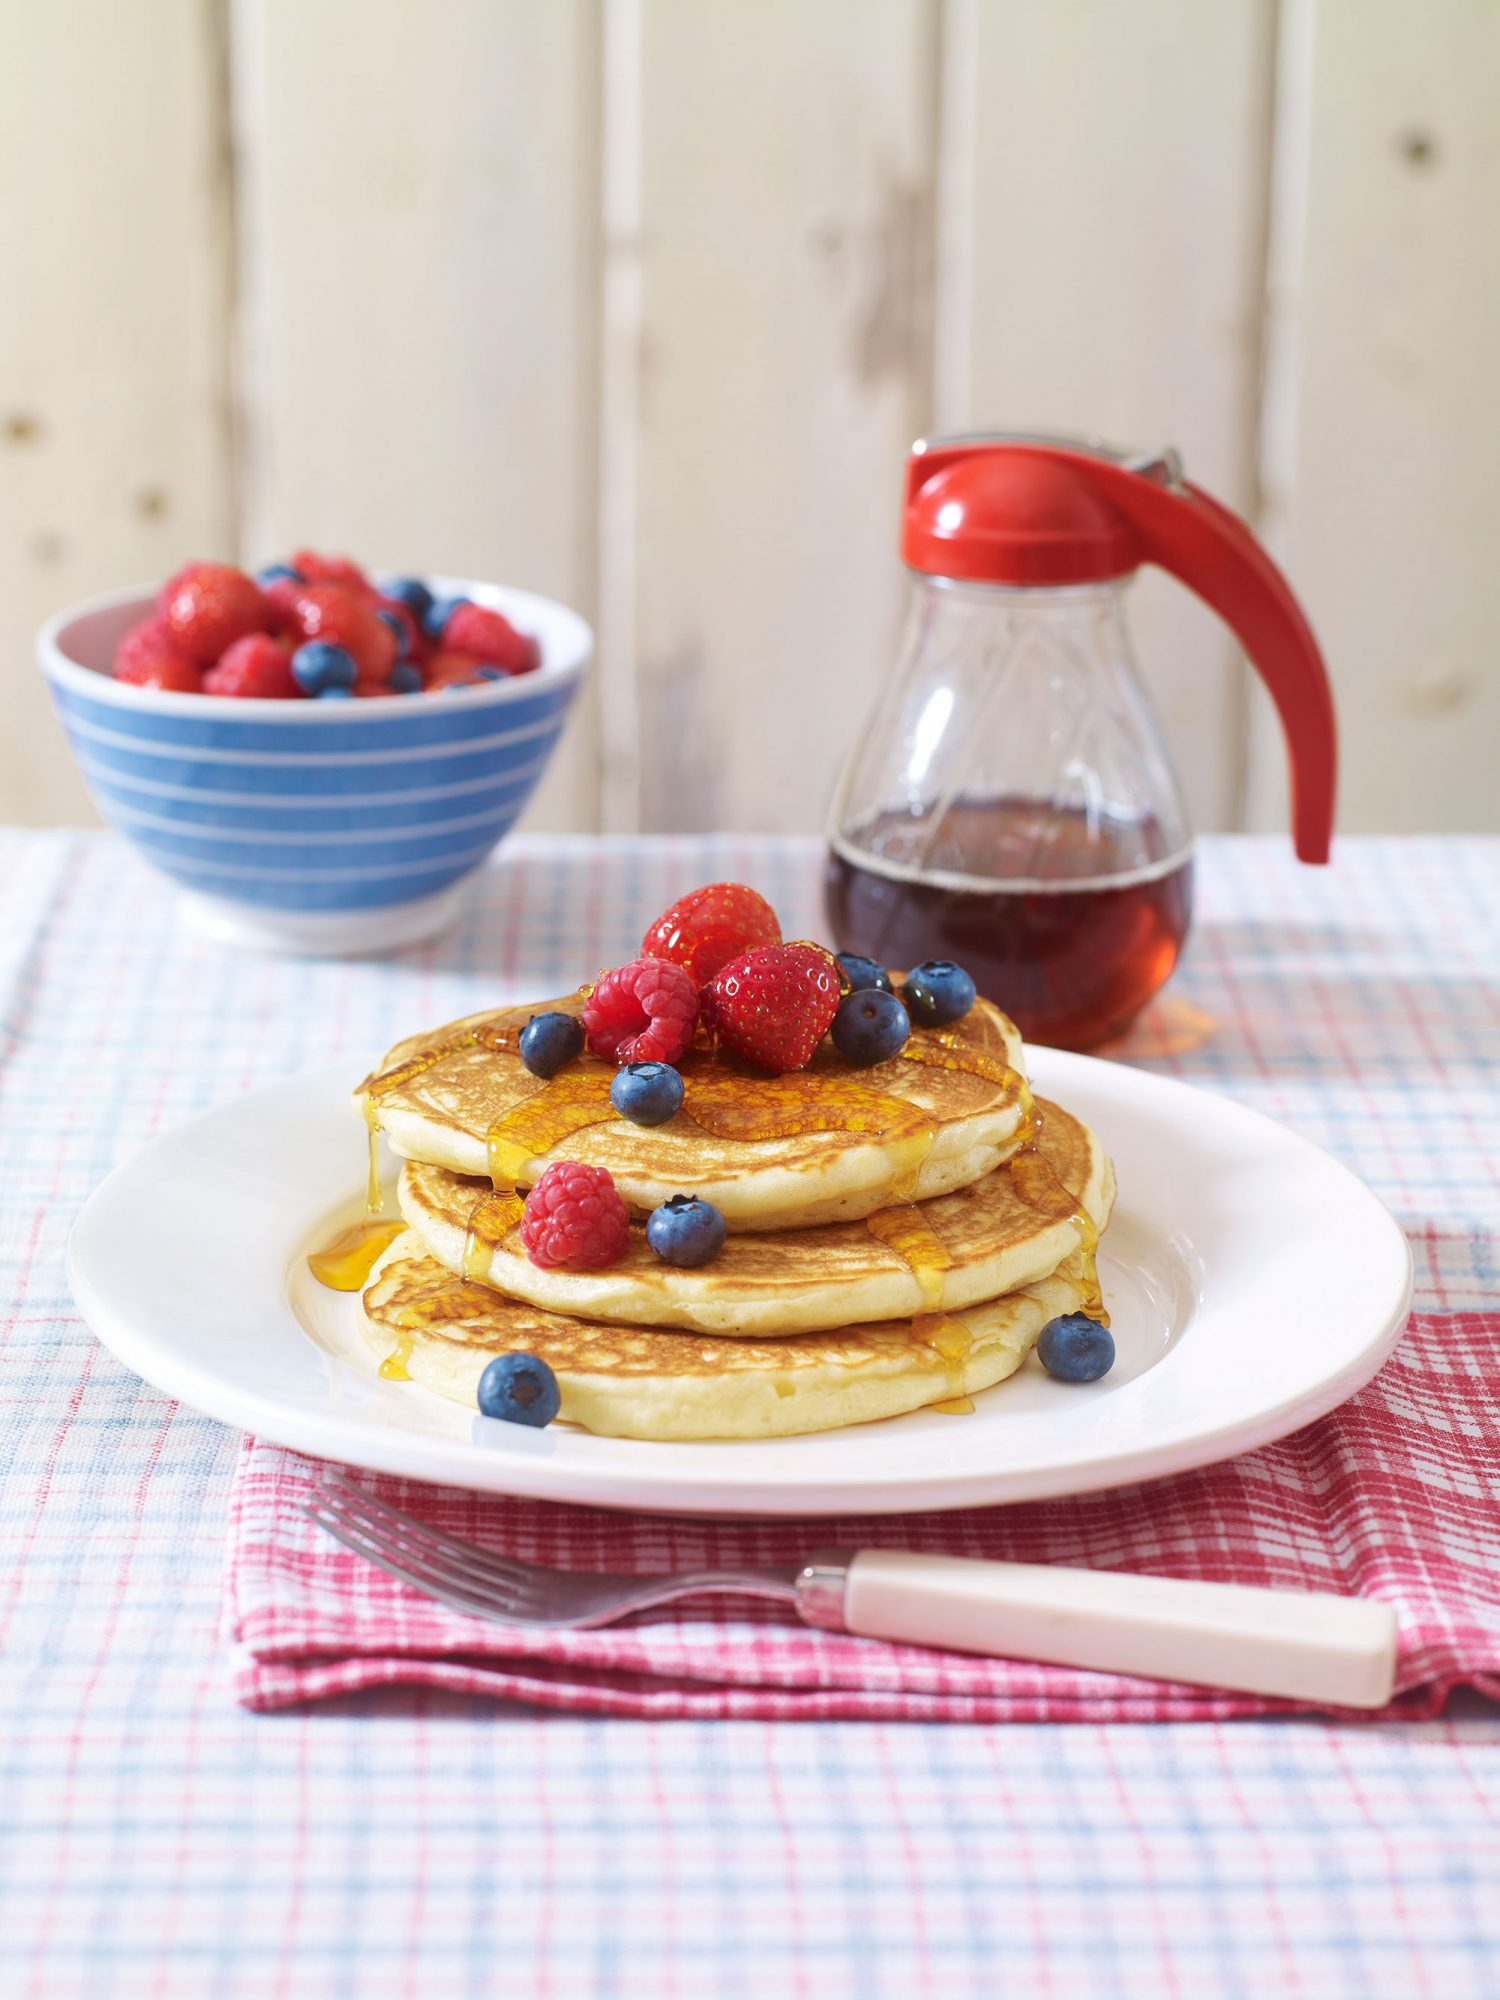 Buttermilk pancakes with summer berries